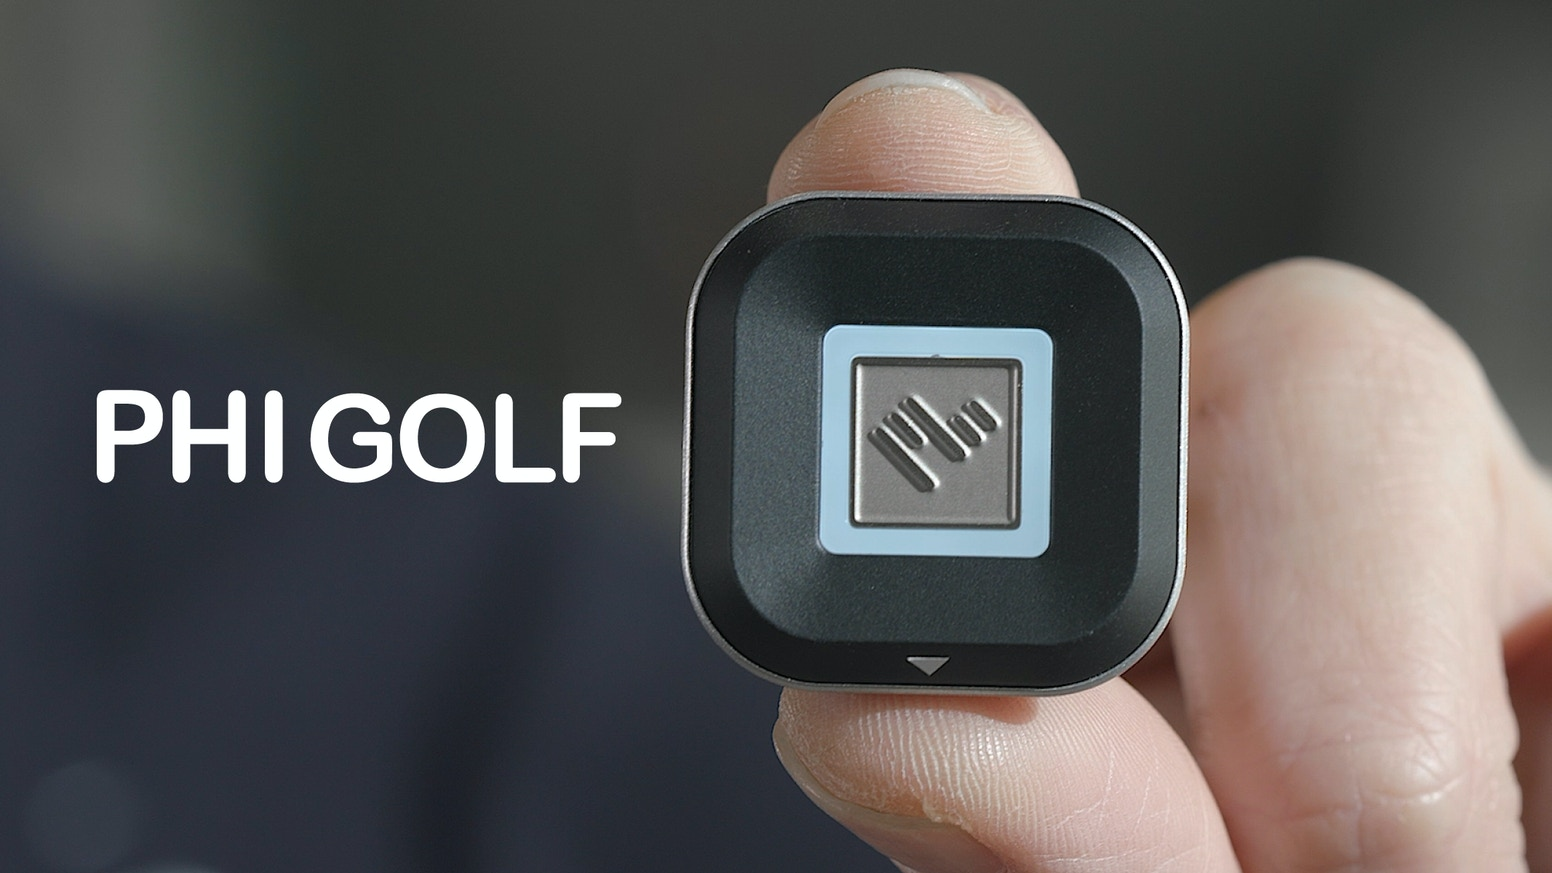 With just a smart phone and PHIGOLF, spend a day on the golf course! The first multi-platform golf simulator PHIGOLF!